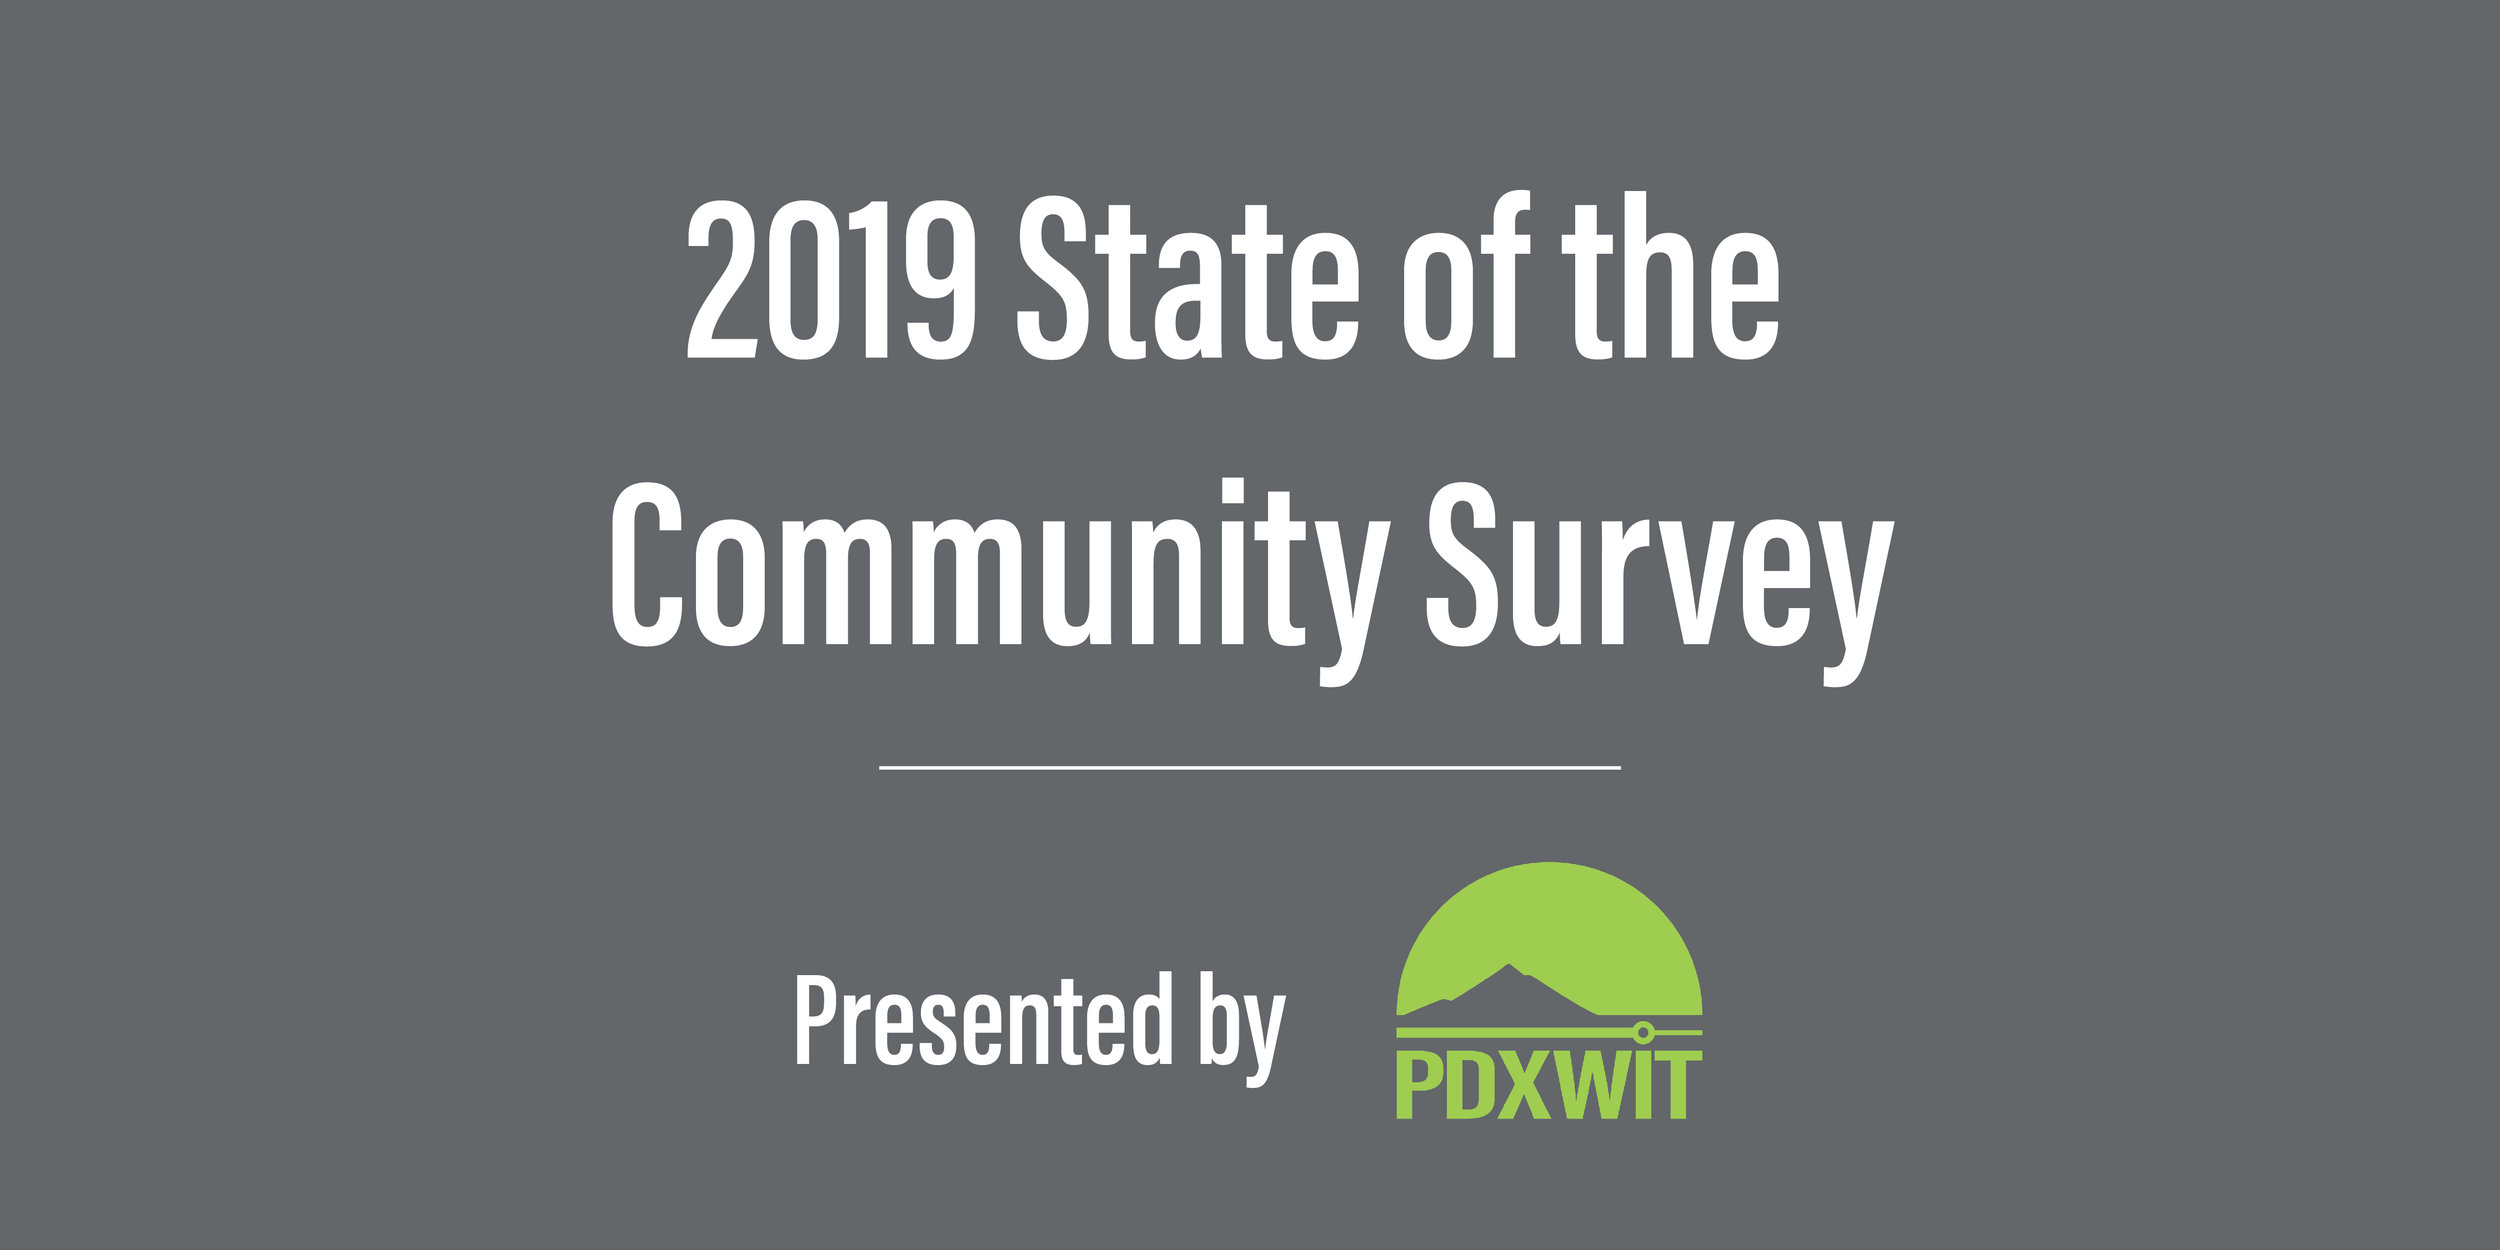 2019_State_of_the_Community_Survey-02.jpg